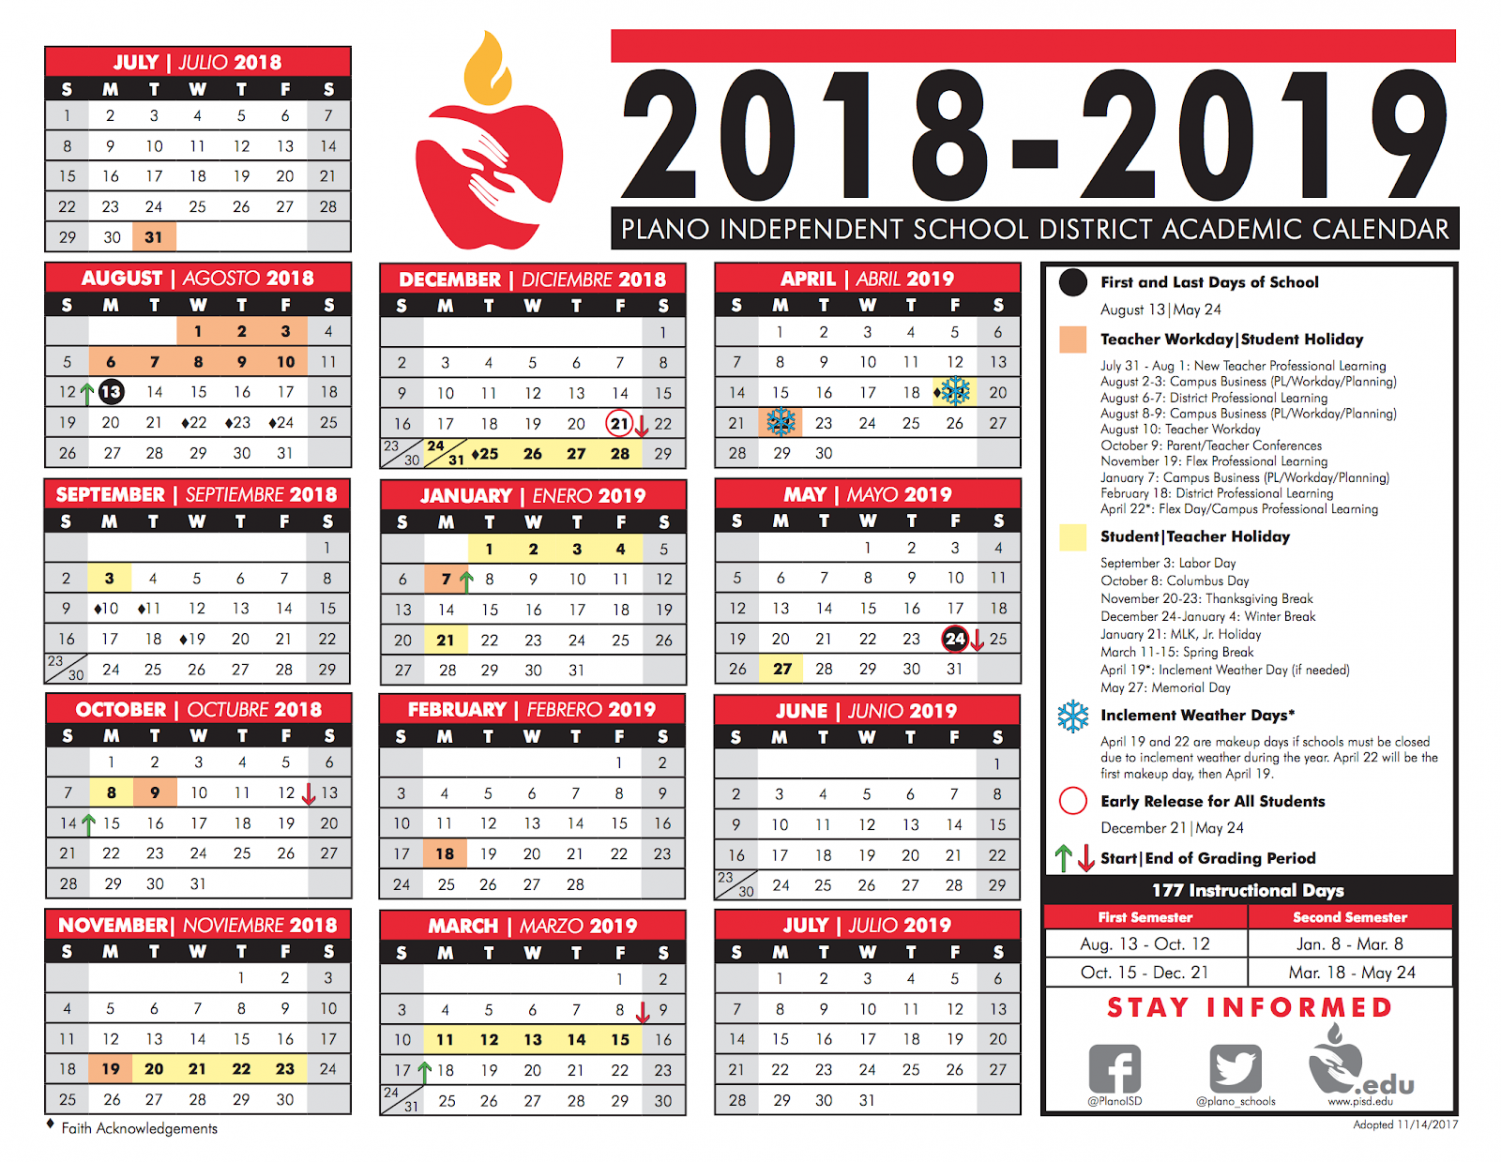 The schedule for the Plano ISD 2018-19 school year.